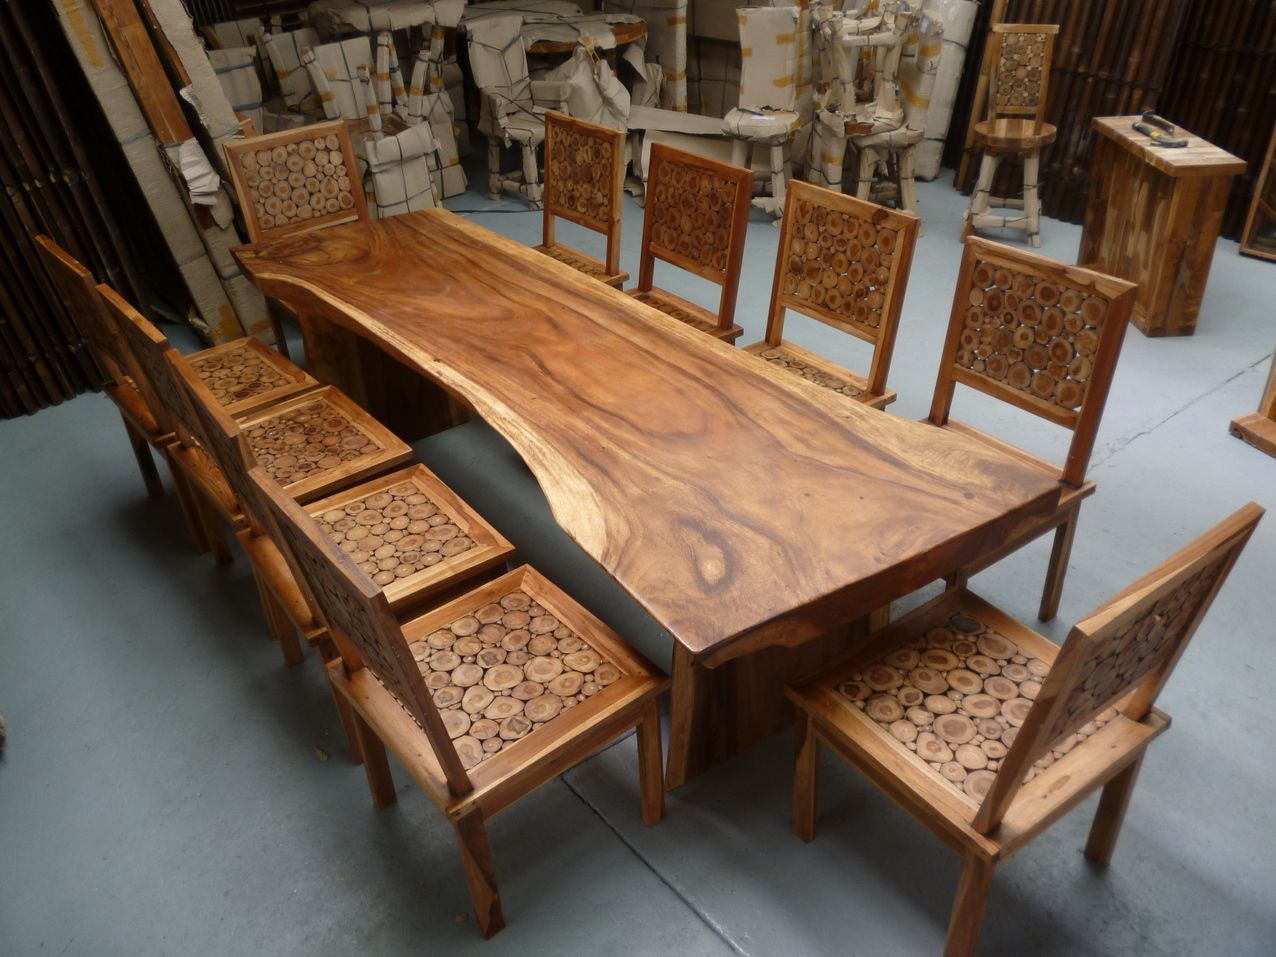 10 Seater Wooden Dining Table 2 7m Long Murex Decor